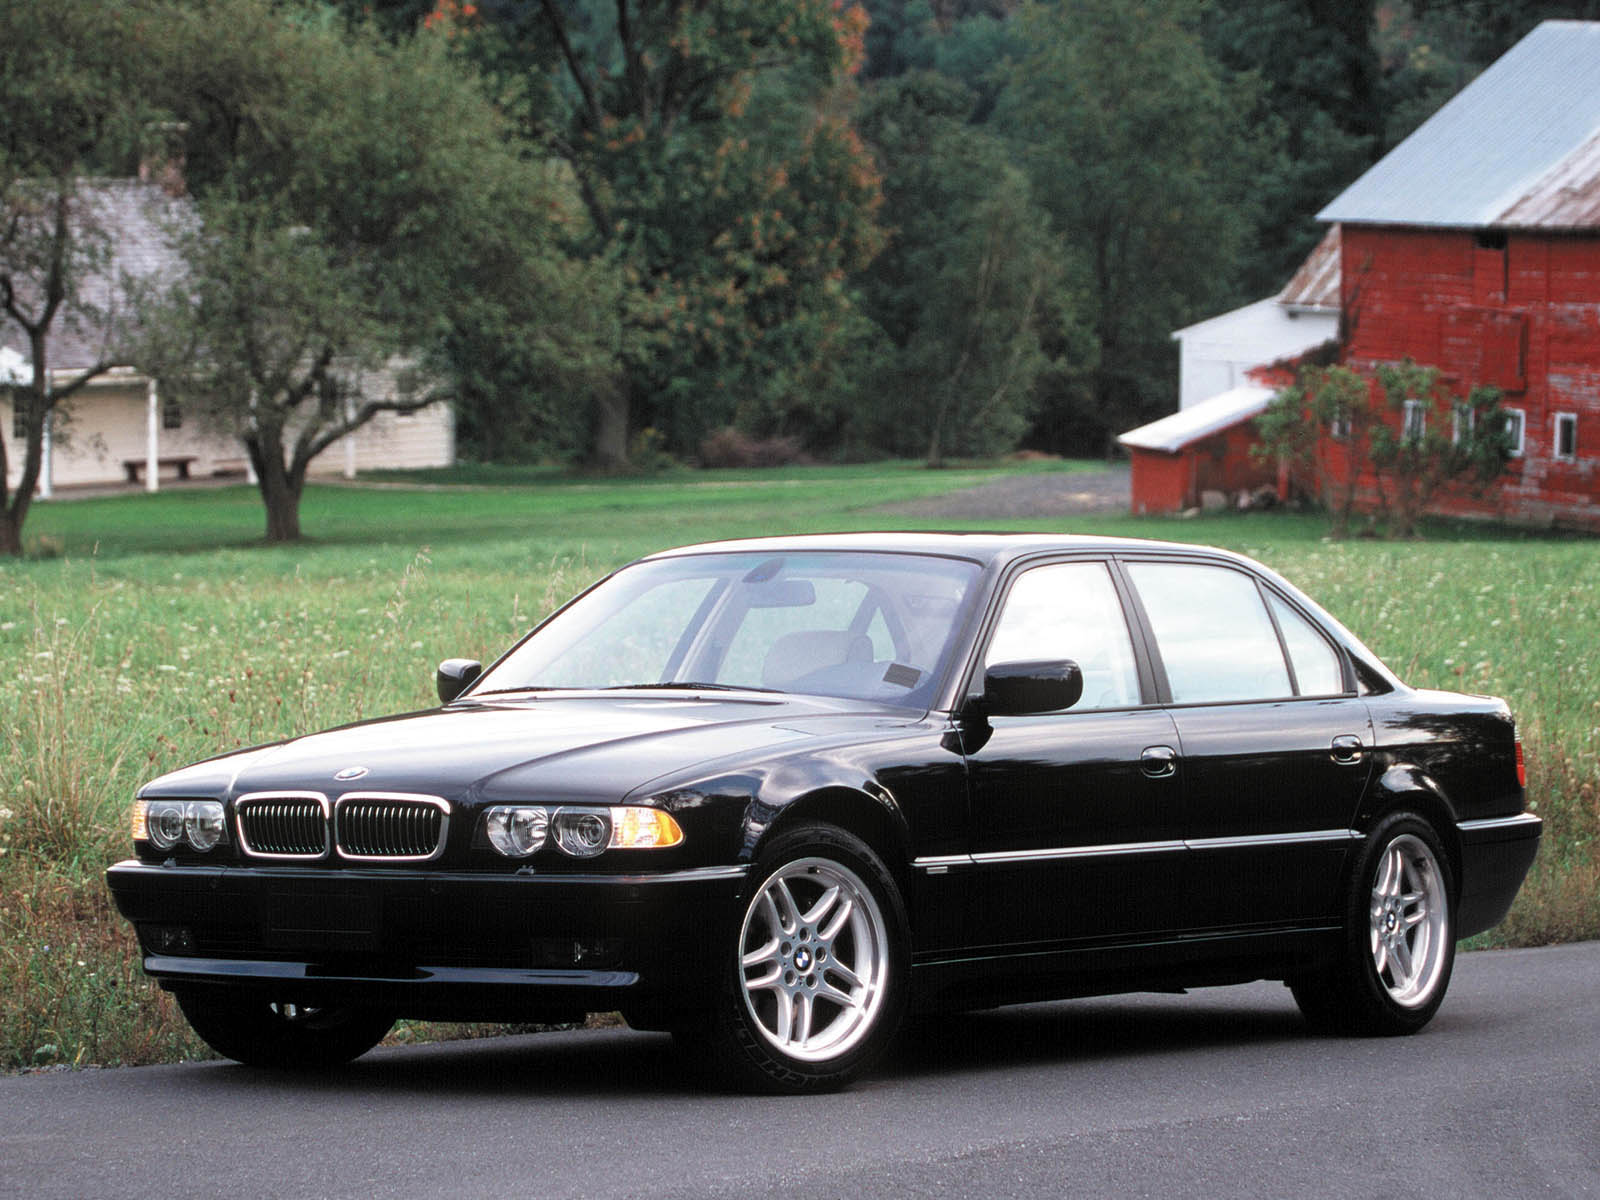 bmw 7 series e38 picture 10105 bmw photo gallery. Black Bedroom Furniture Sets. Home Design Ideas